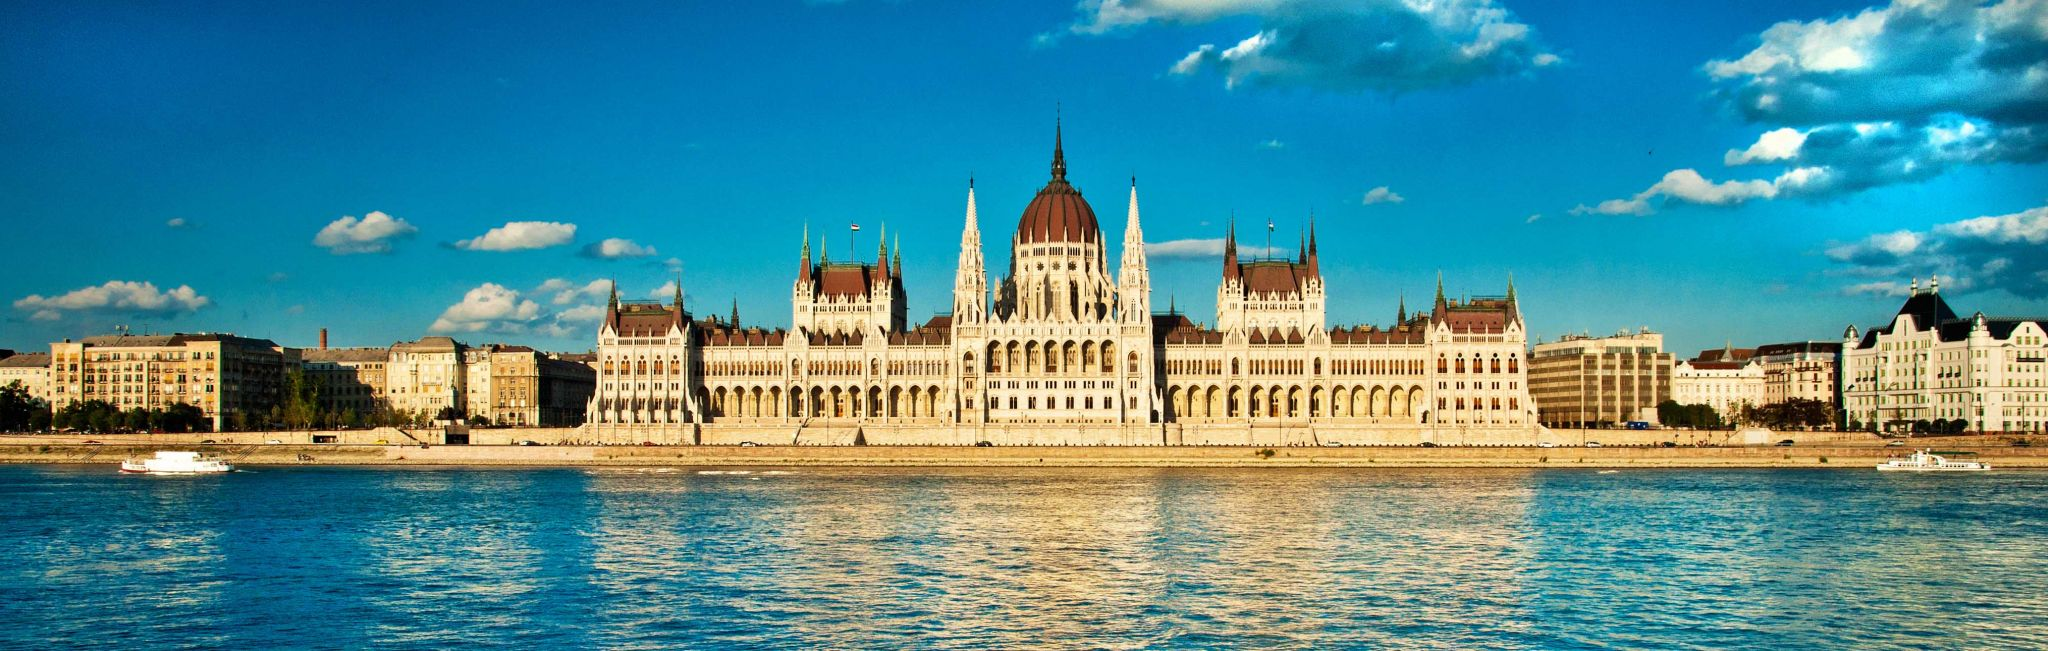 Best Hungary Tours And Vacations 2019 2020